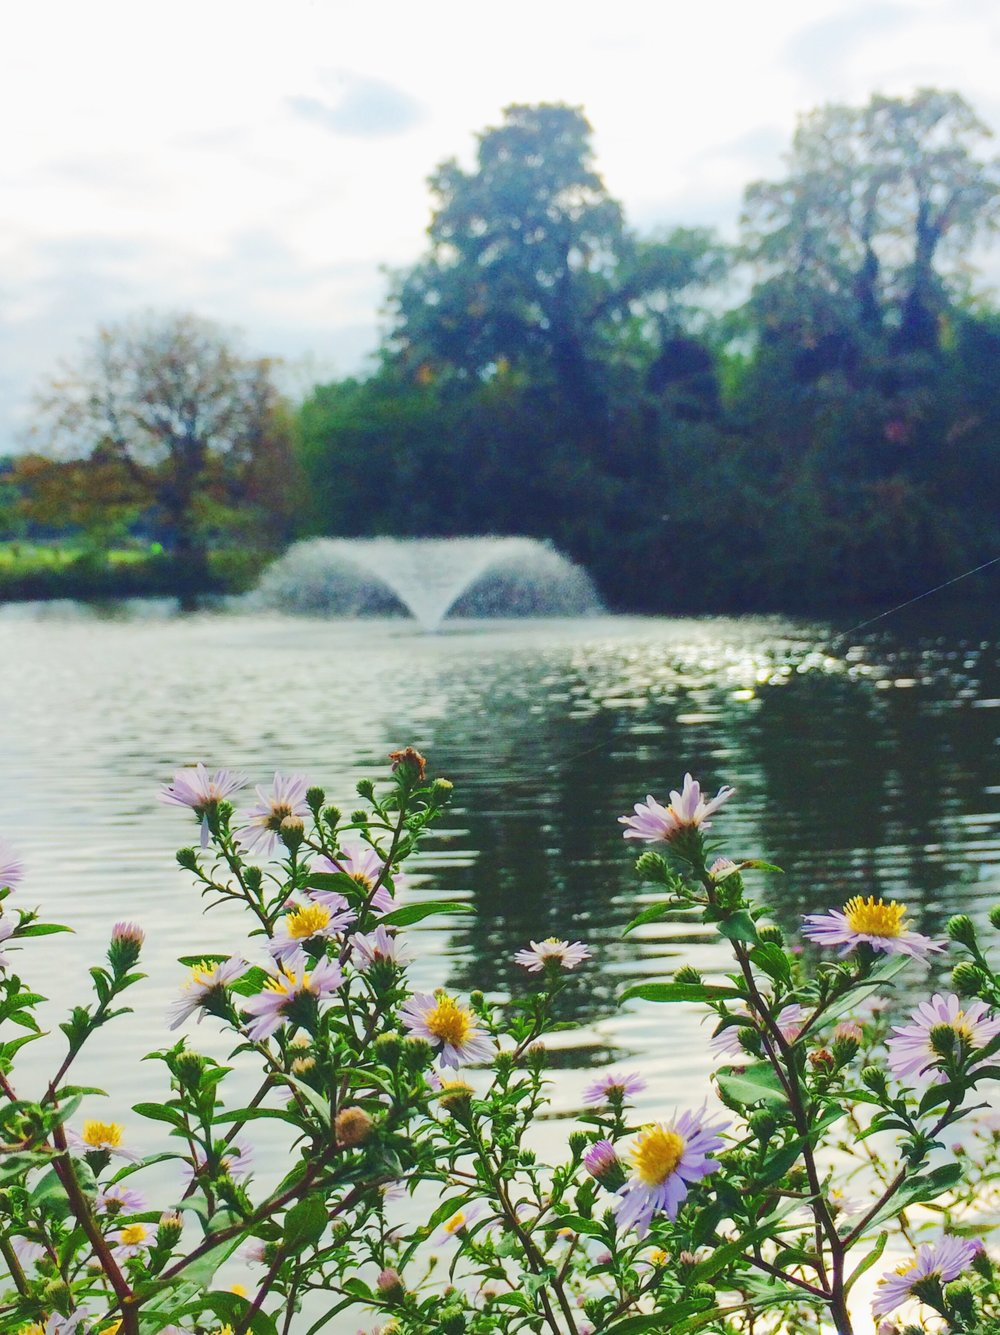 clissold-park-flowers-and-lake